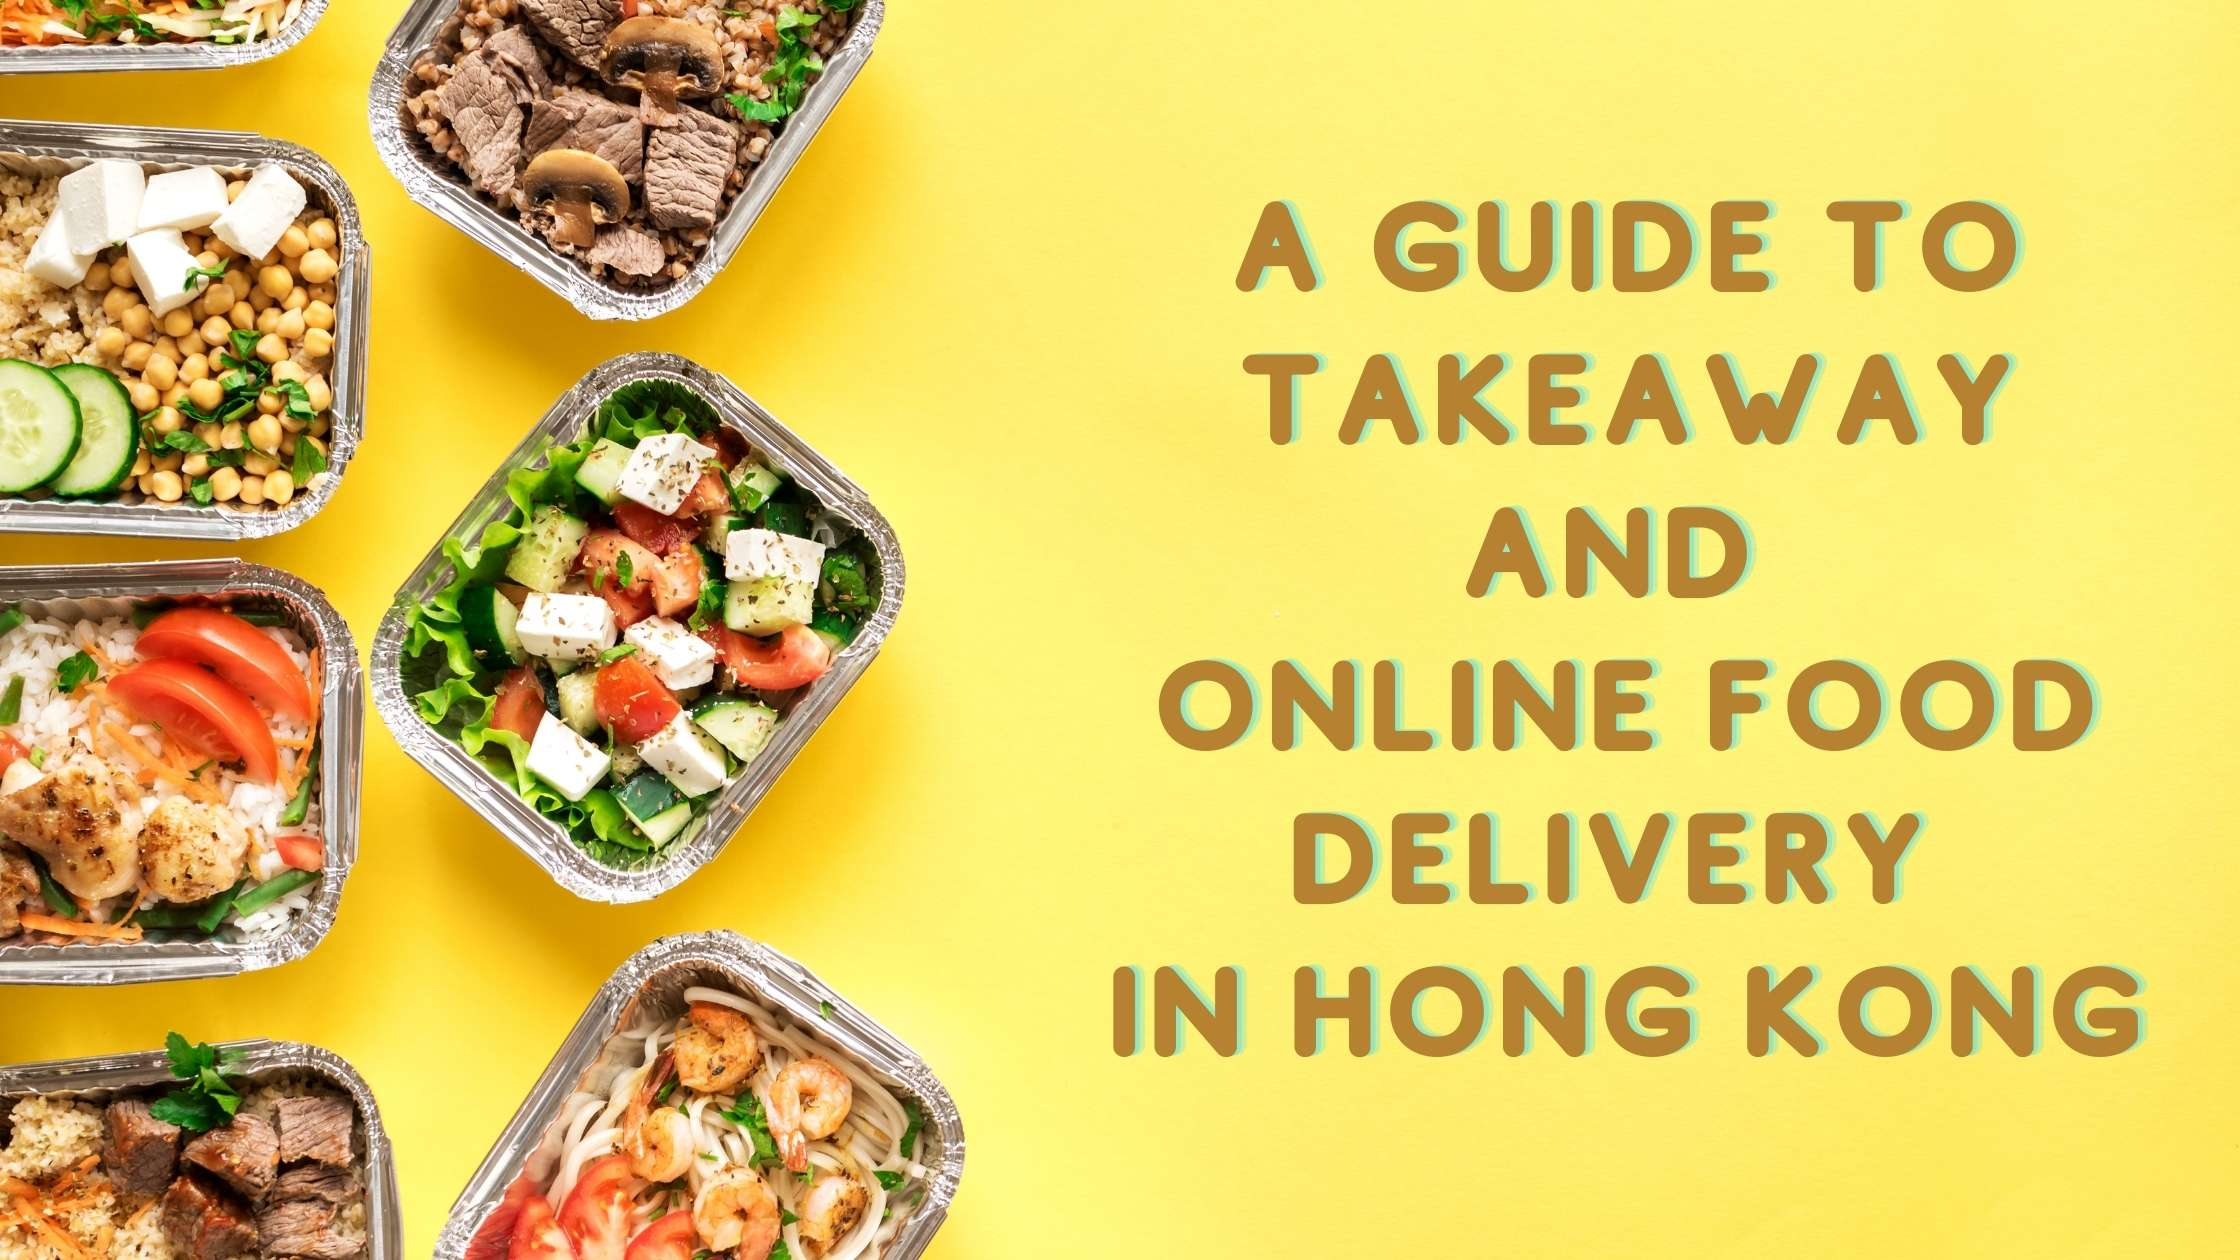 A GUIDE TO TAKEAWAY AND ONLINE FOOD DELIVERY IN HONG KONG